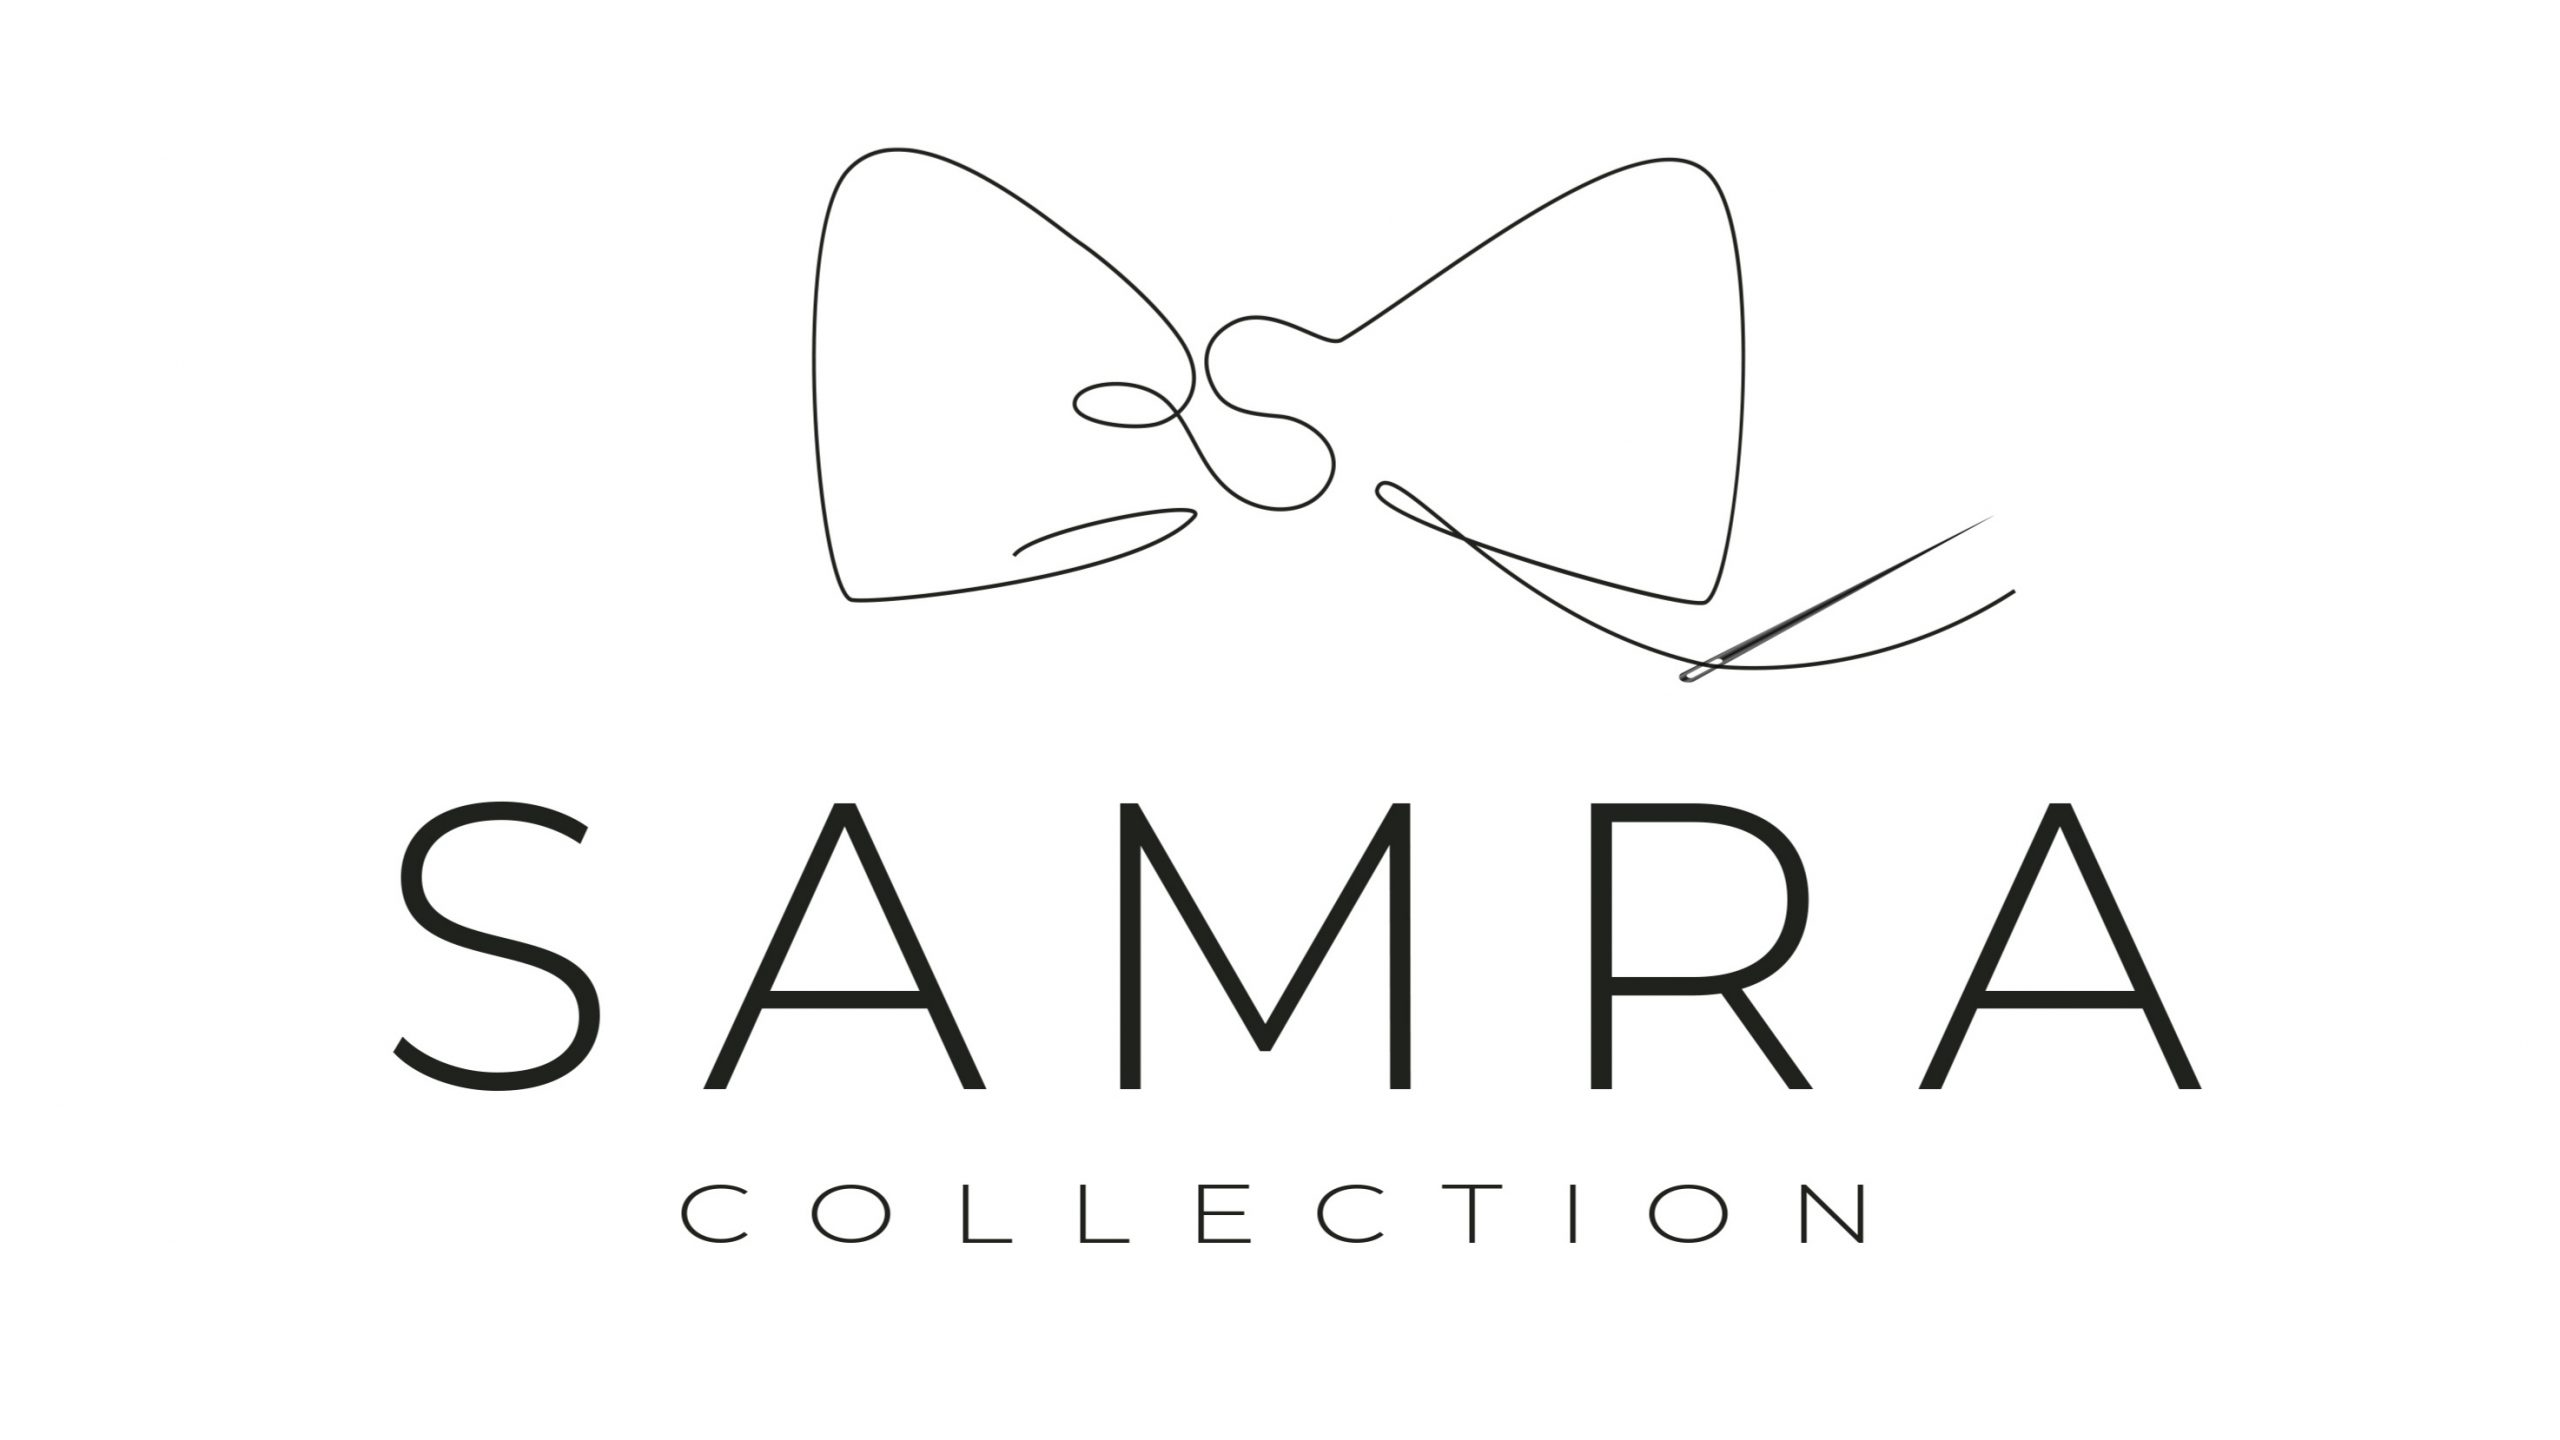 Samra Collection